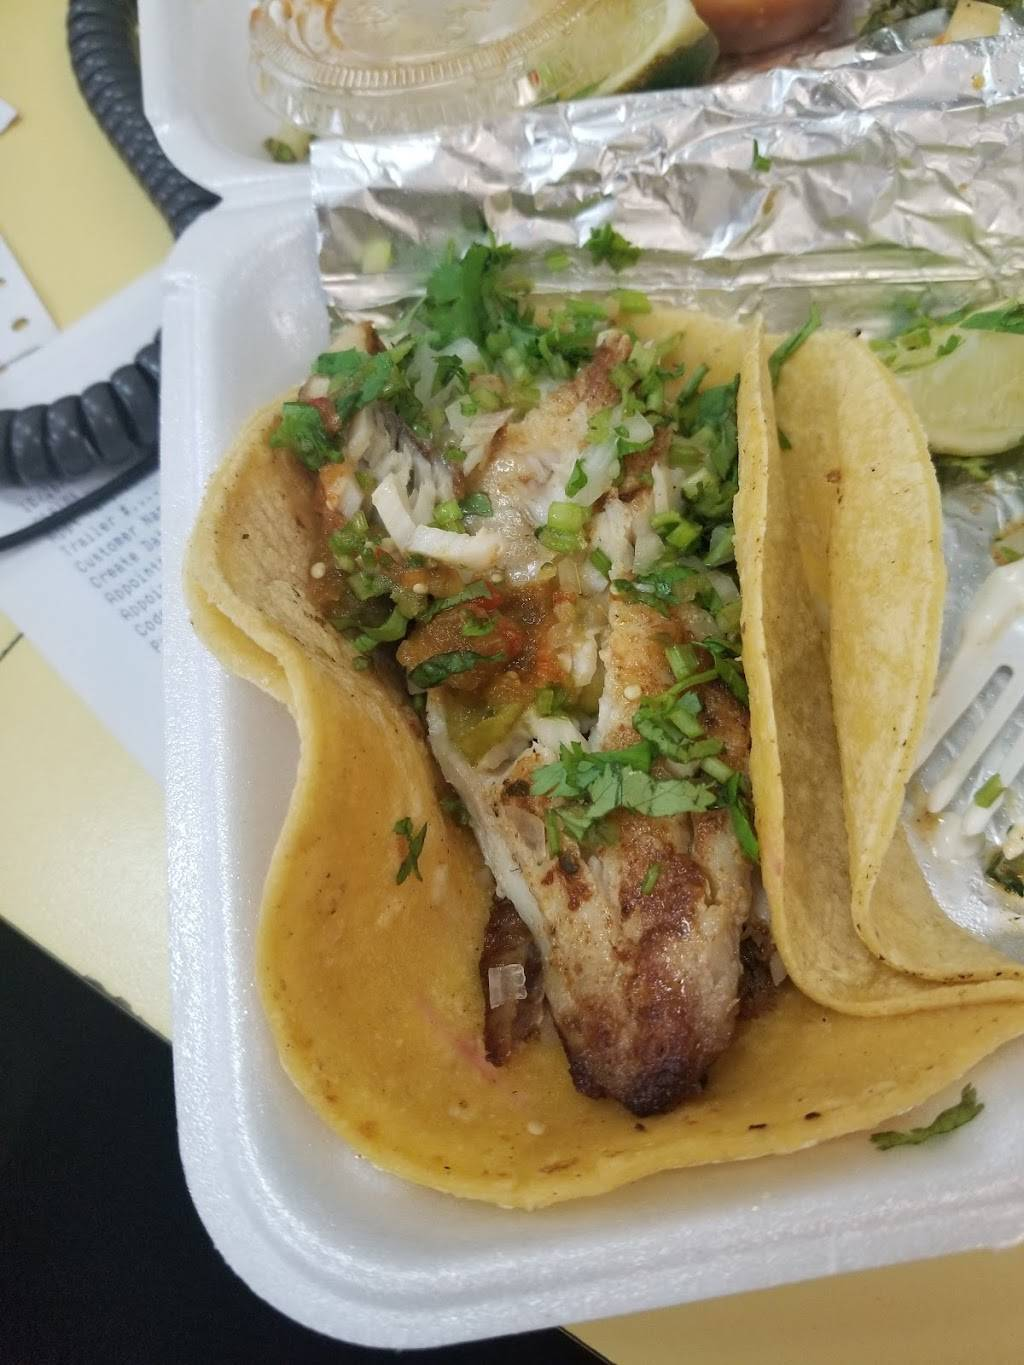 My Mexico   restaurant   720 West Side Ave, Jersey City, NJ 07306, USA   2014331046 OR +1 201-433-1046